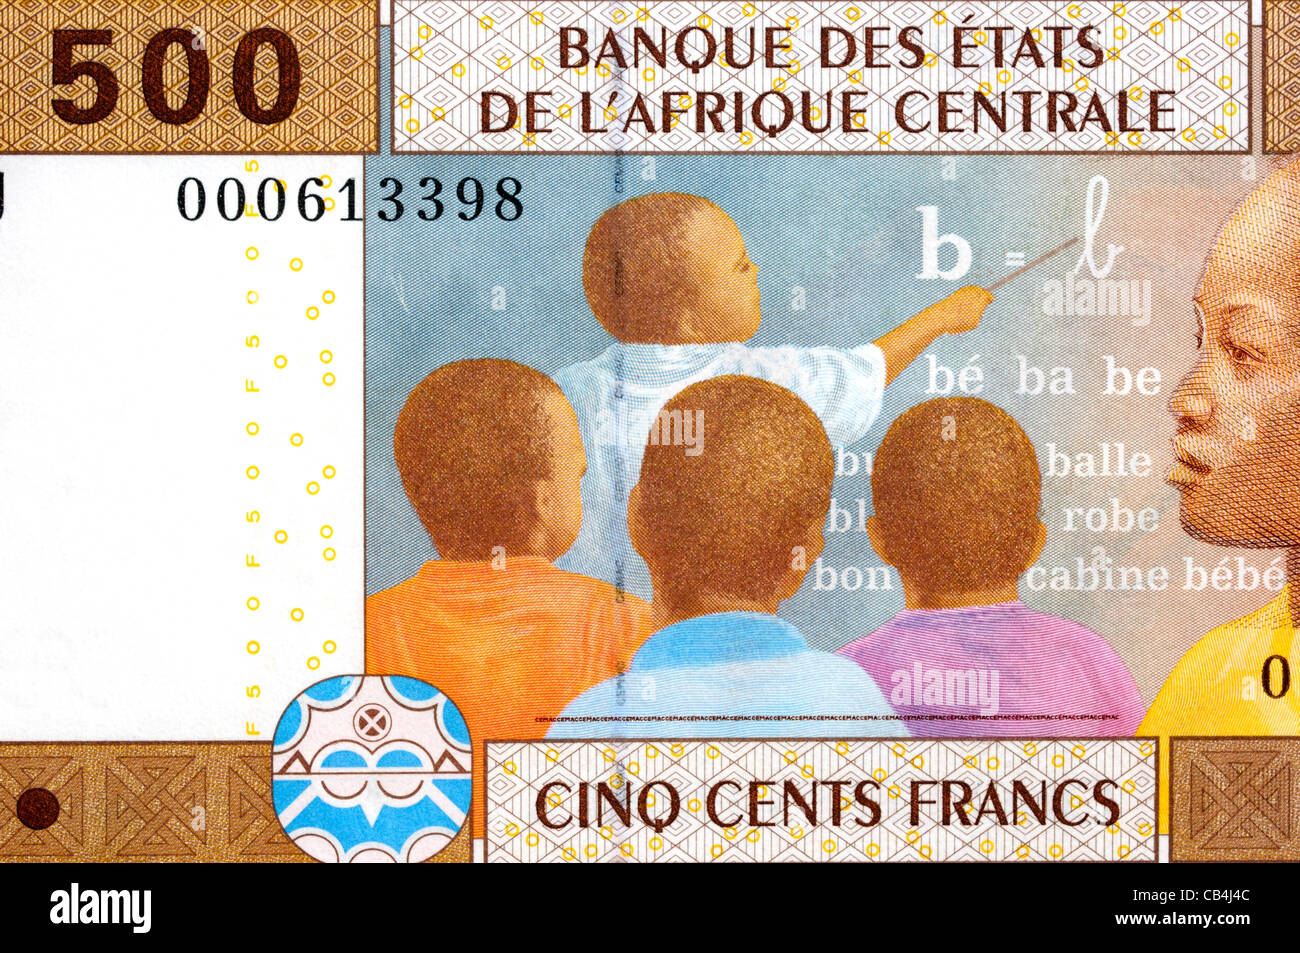 Cameroon 500 Five Hundred Franc Bank Note. - Stock Image